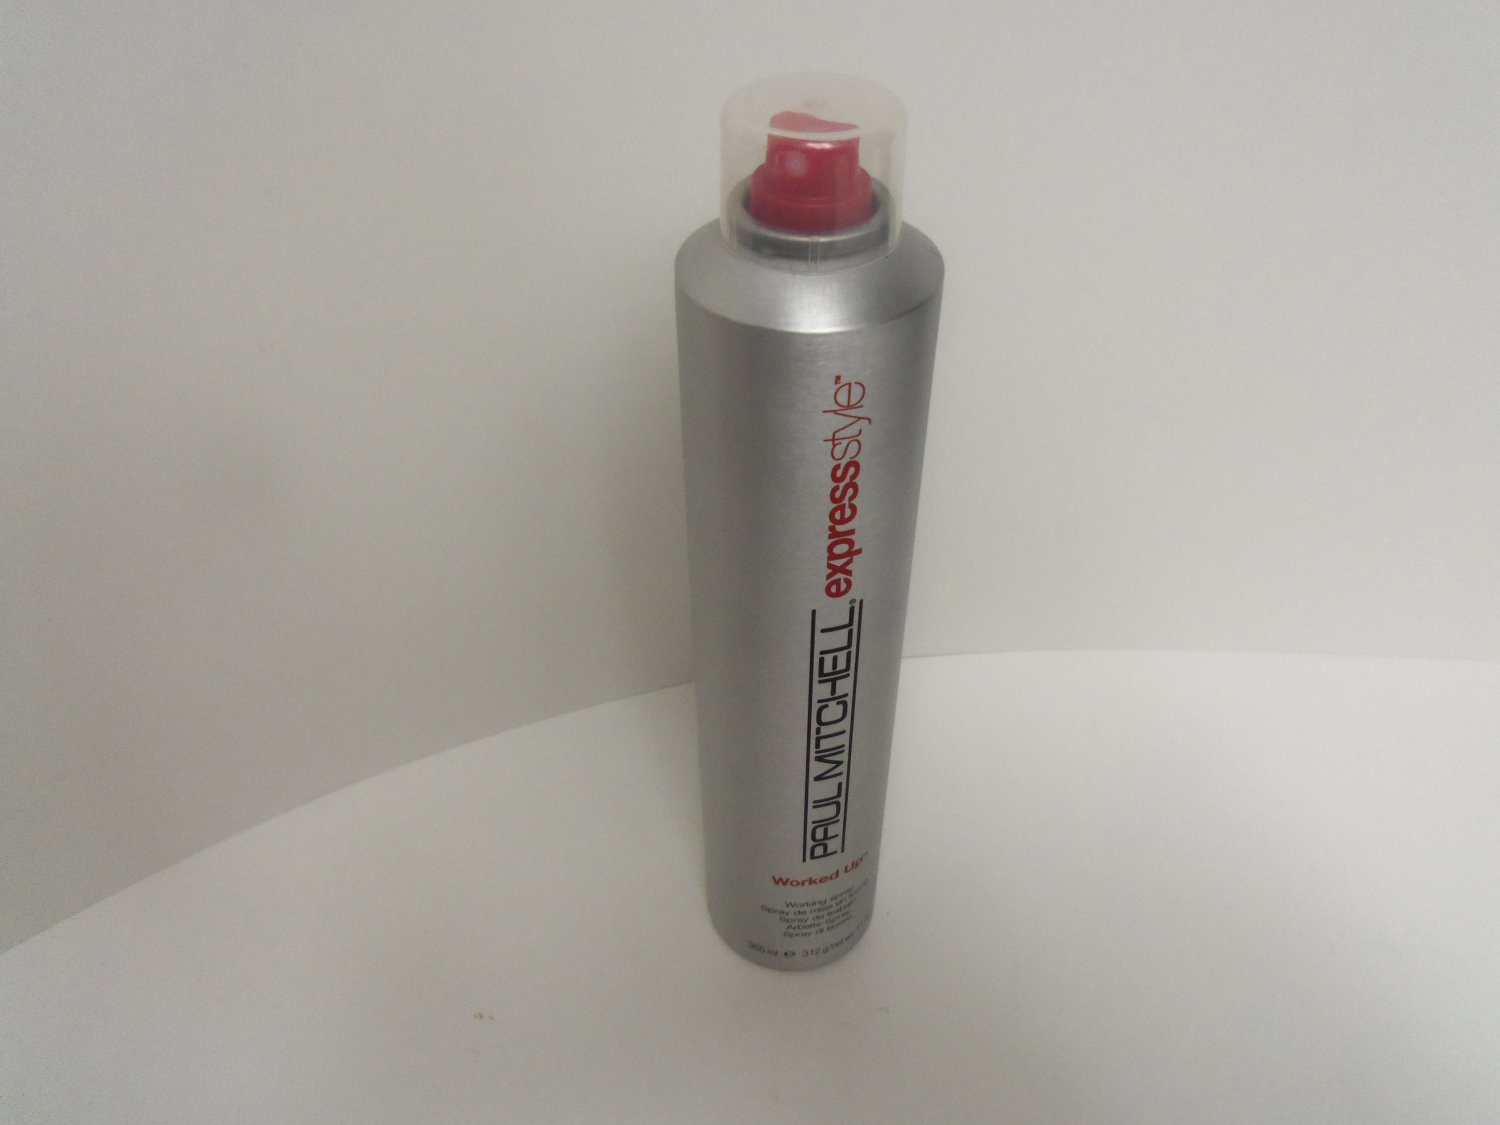 Paul Mitchell Express Style Worked Up 11oz